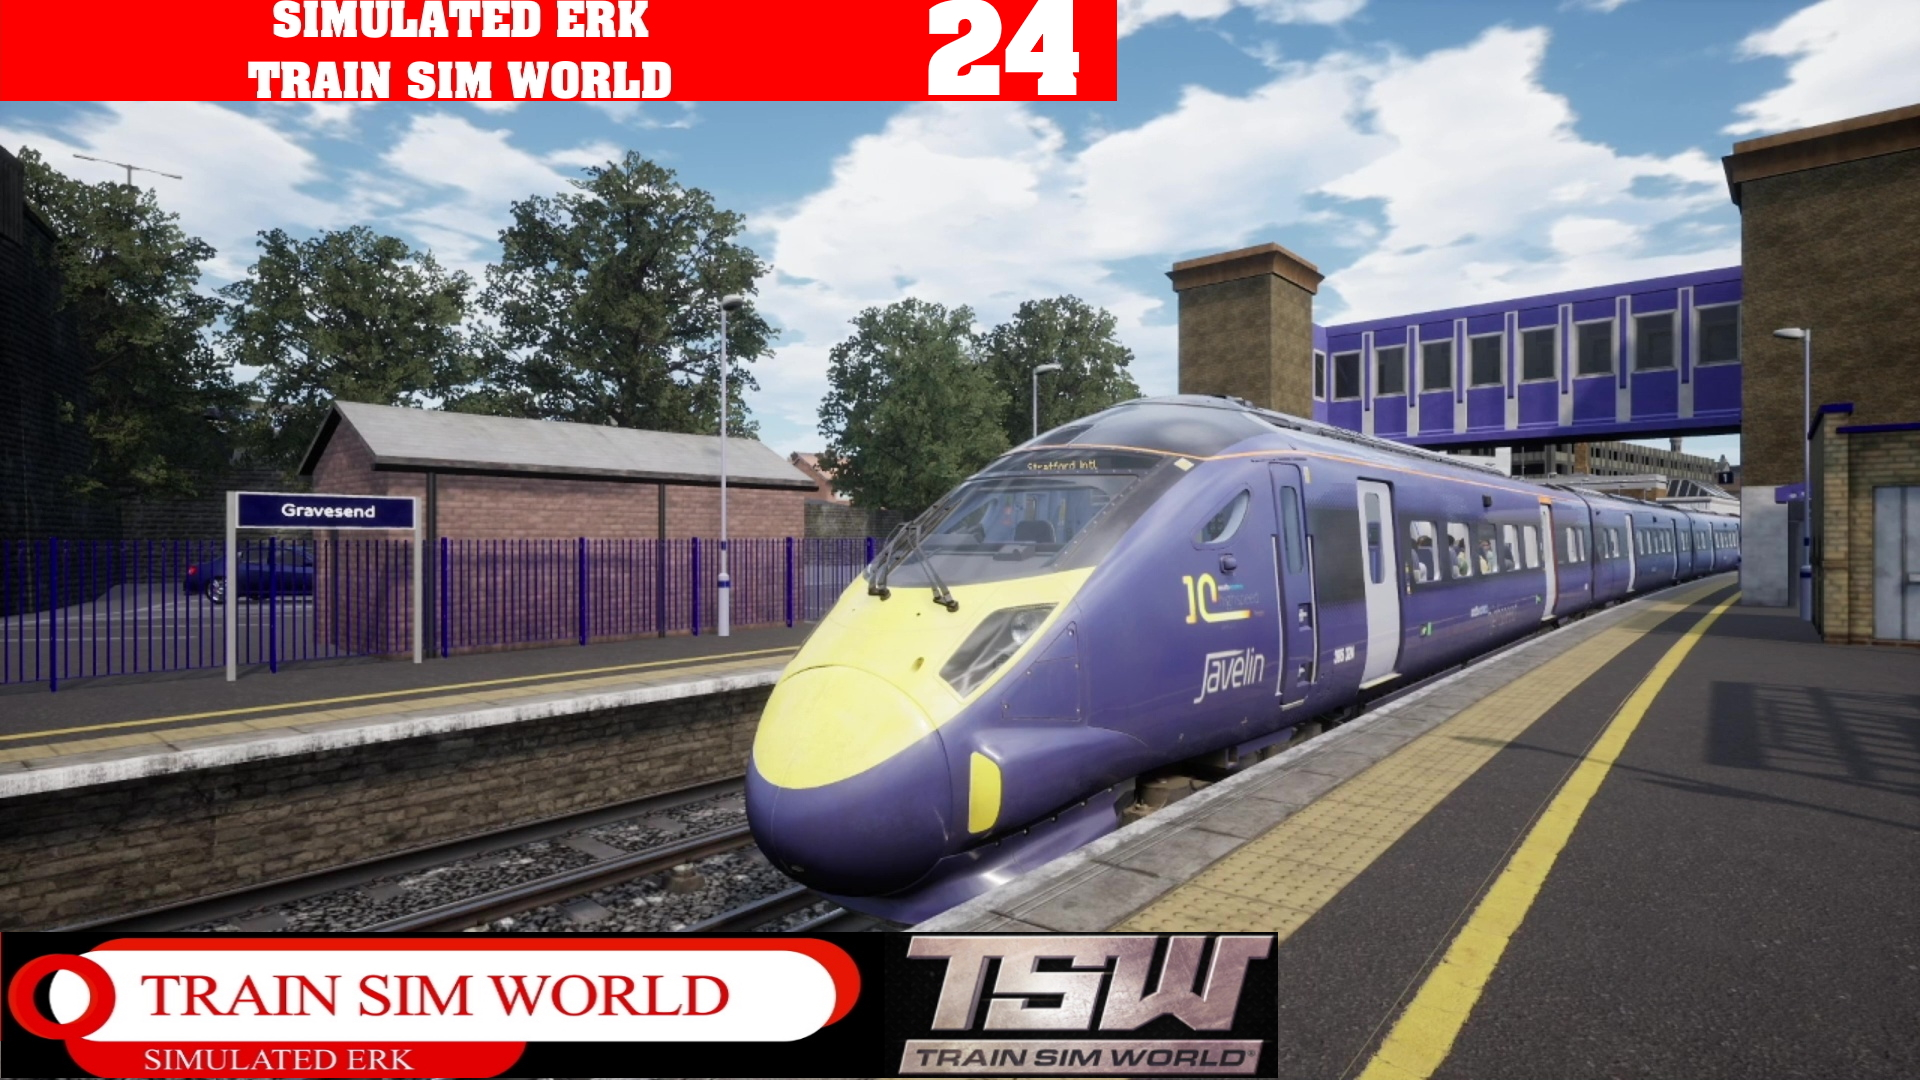 Simulated Erk: Train Sim World episode 24 | I Feel The Need For Southeastern High Speed